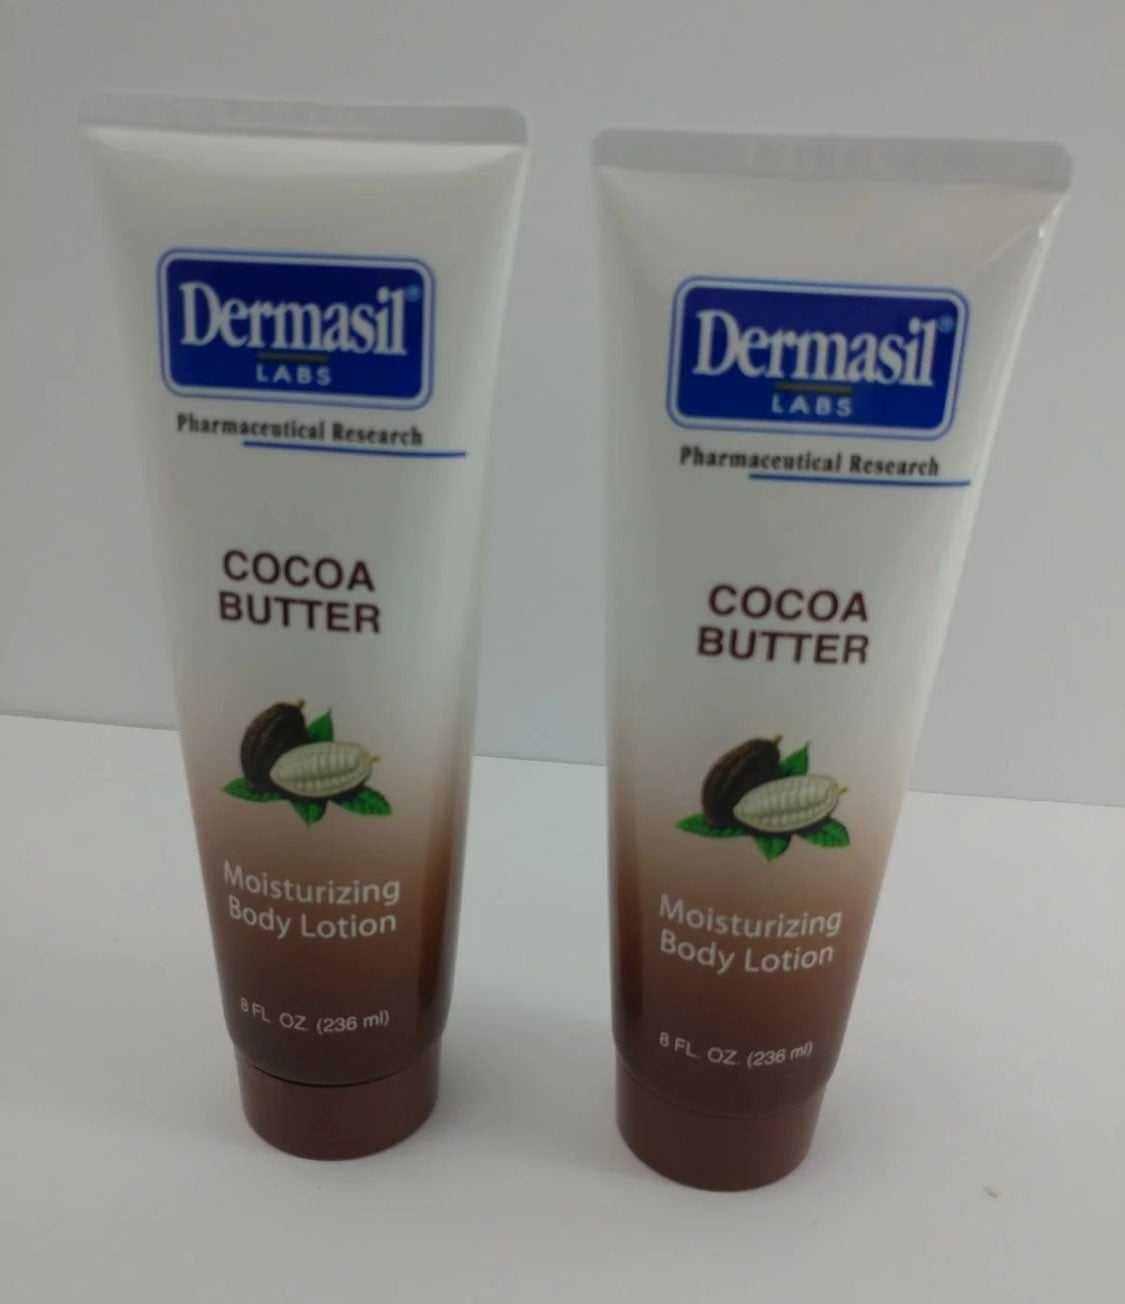 Lot of 2 Dermasil Labs Cocoa Butter Mois